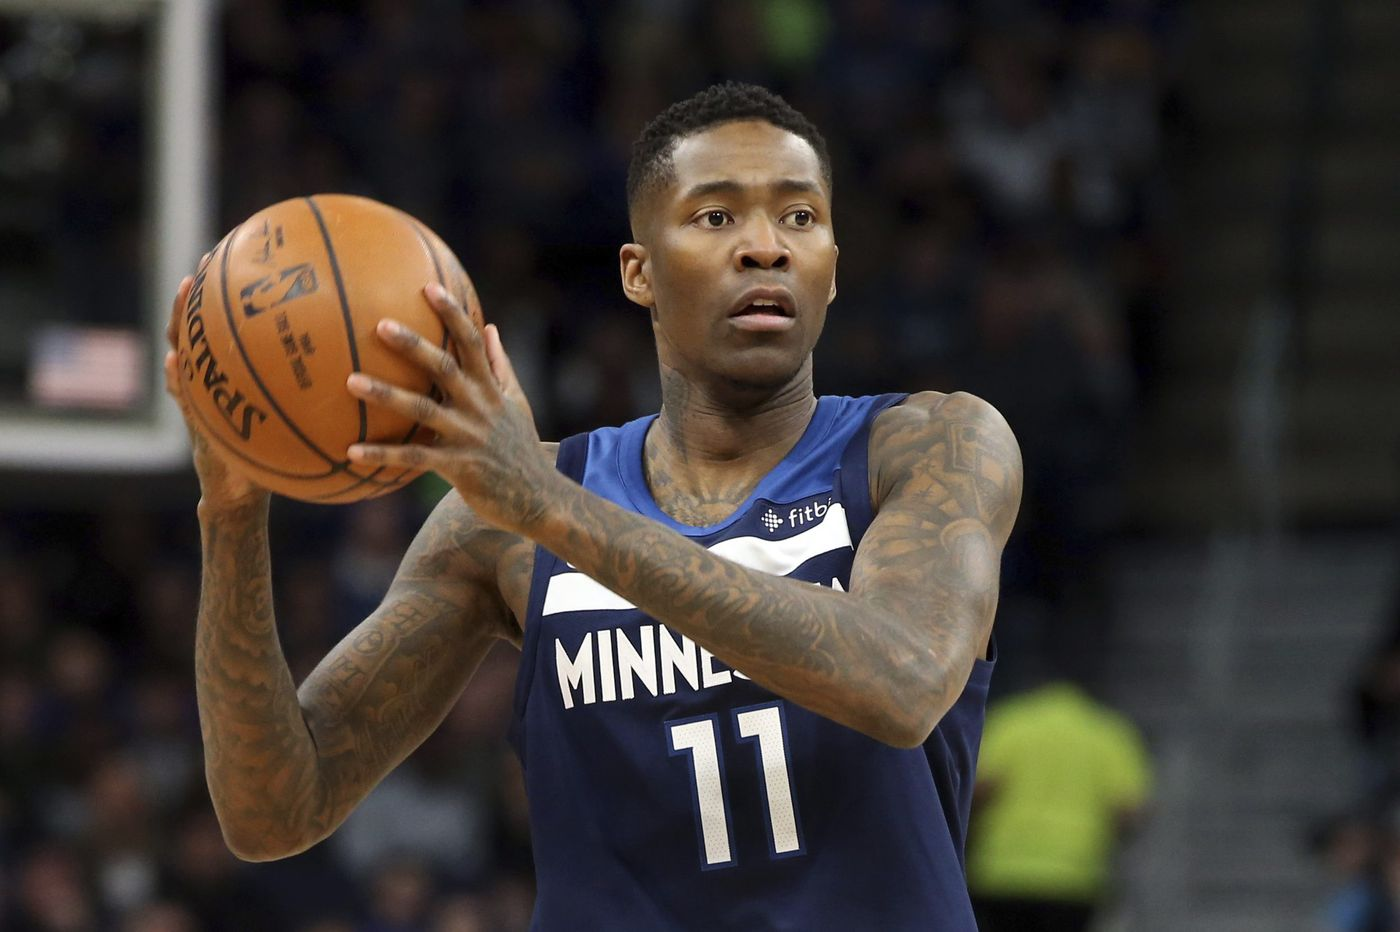 Sixers express interest in signing free agent Jamal Crawford, sources say